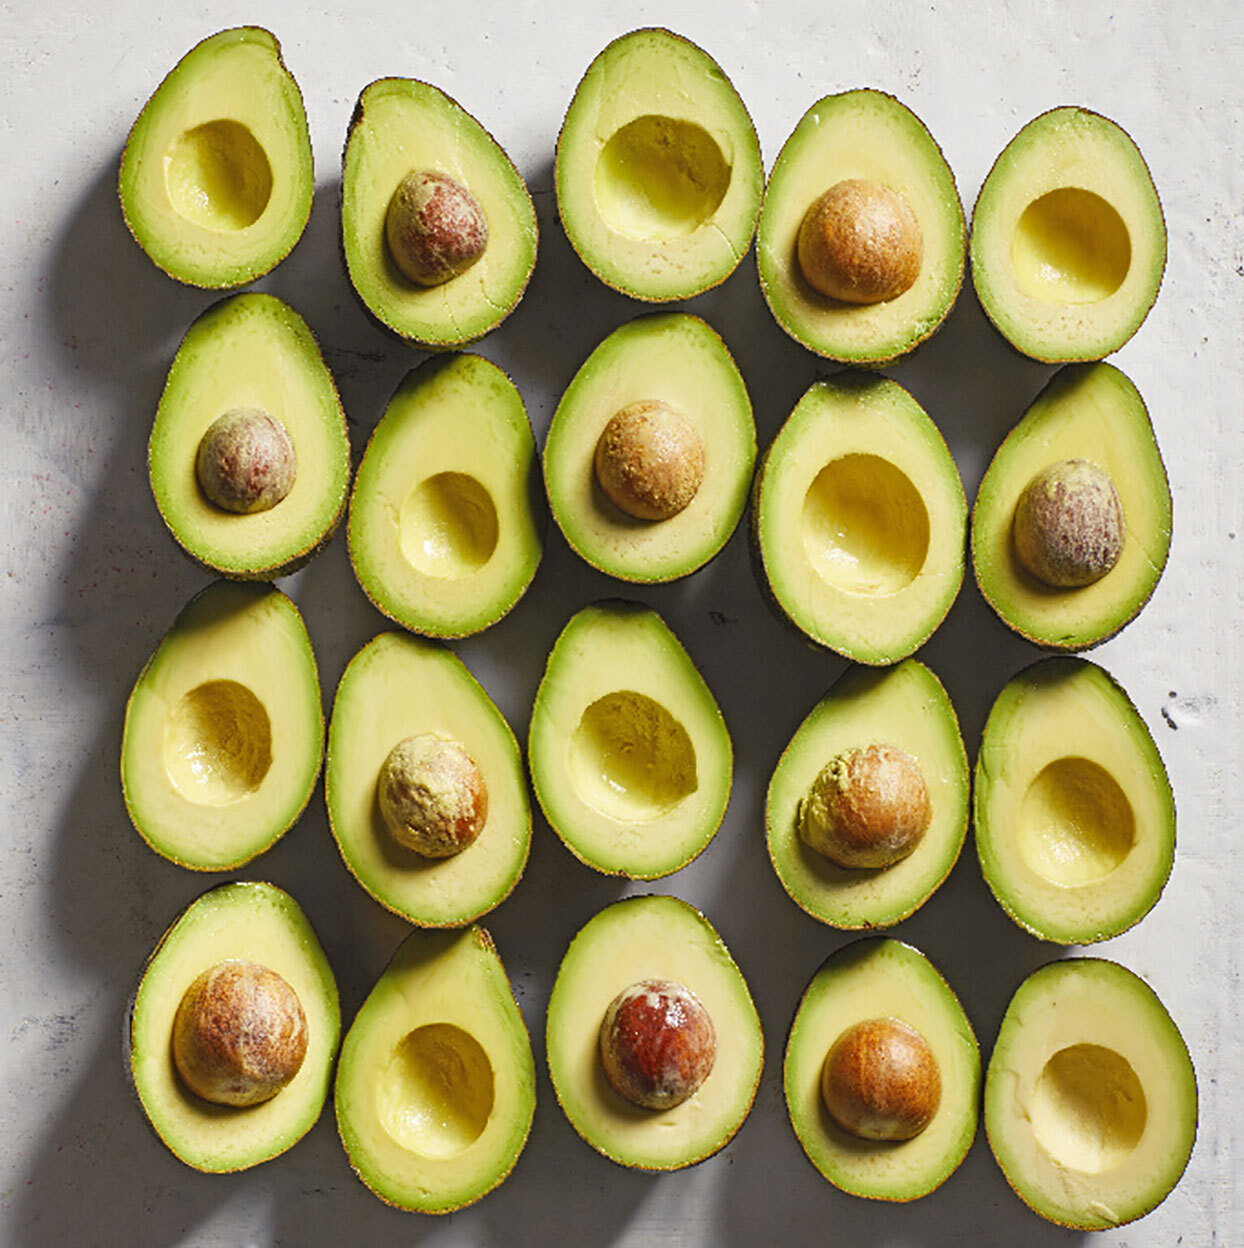 How to Store Whole and Cut Avocados So They Last